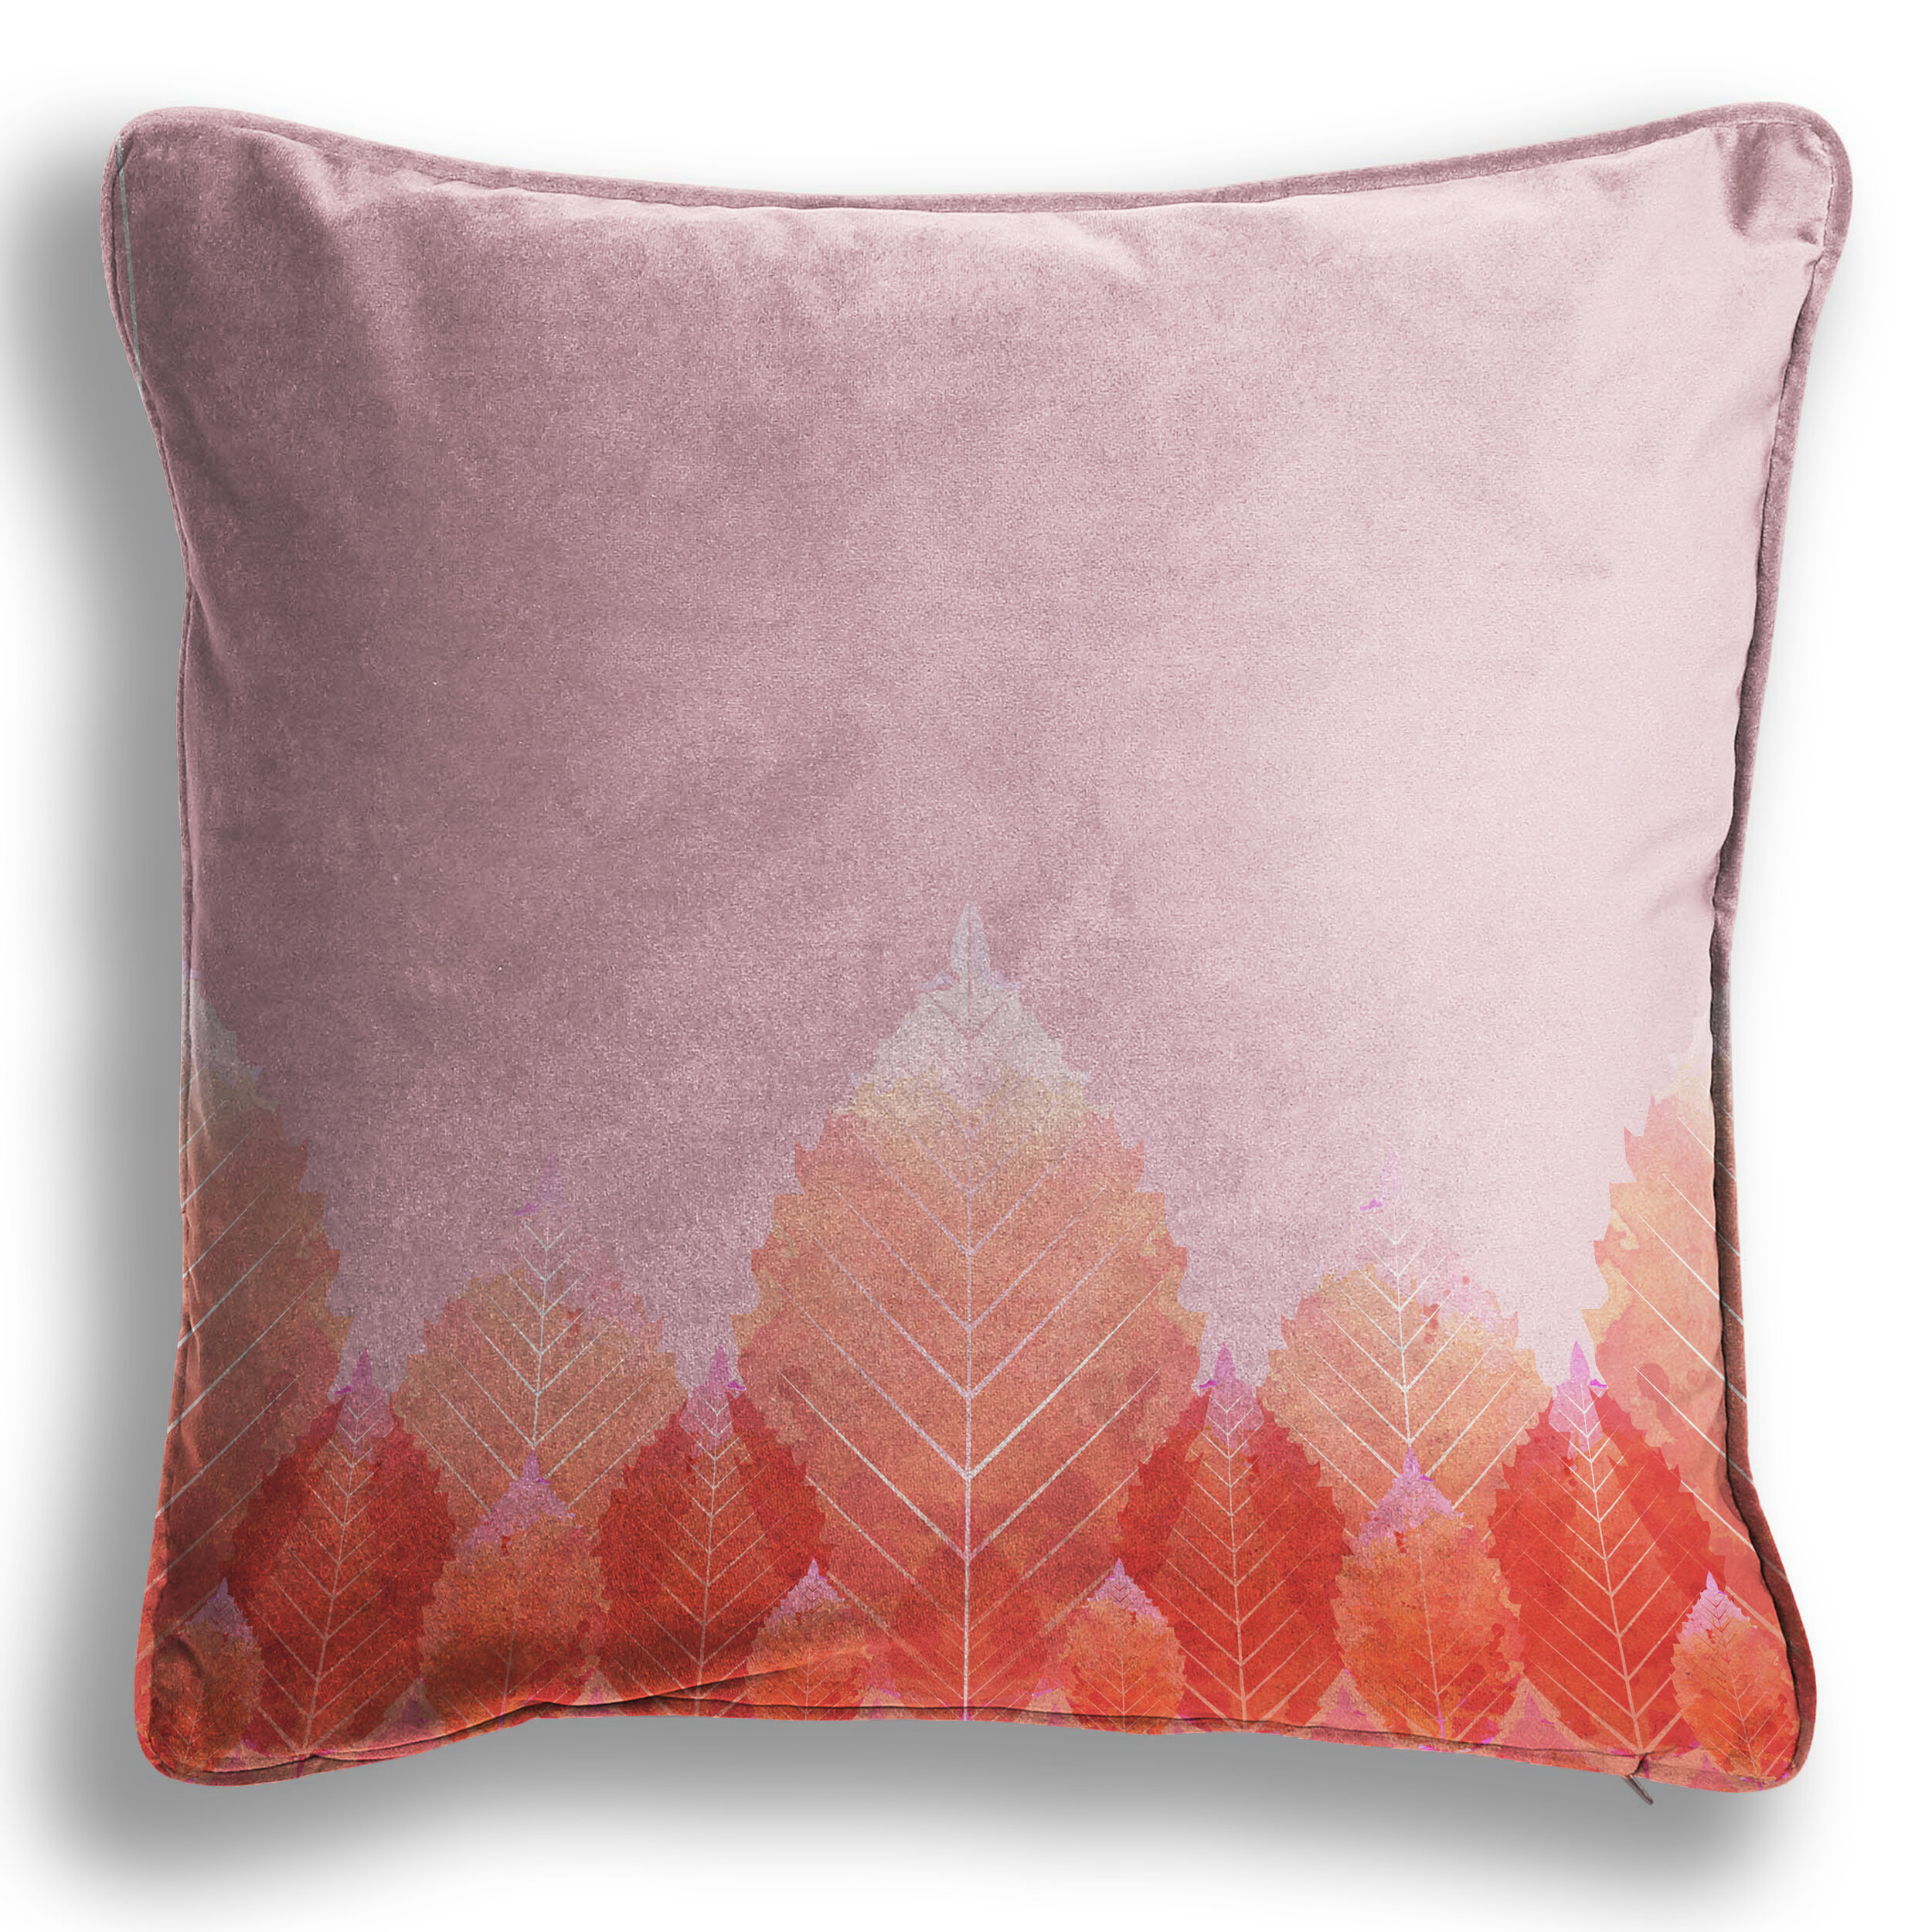 Blush Beech Cushion